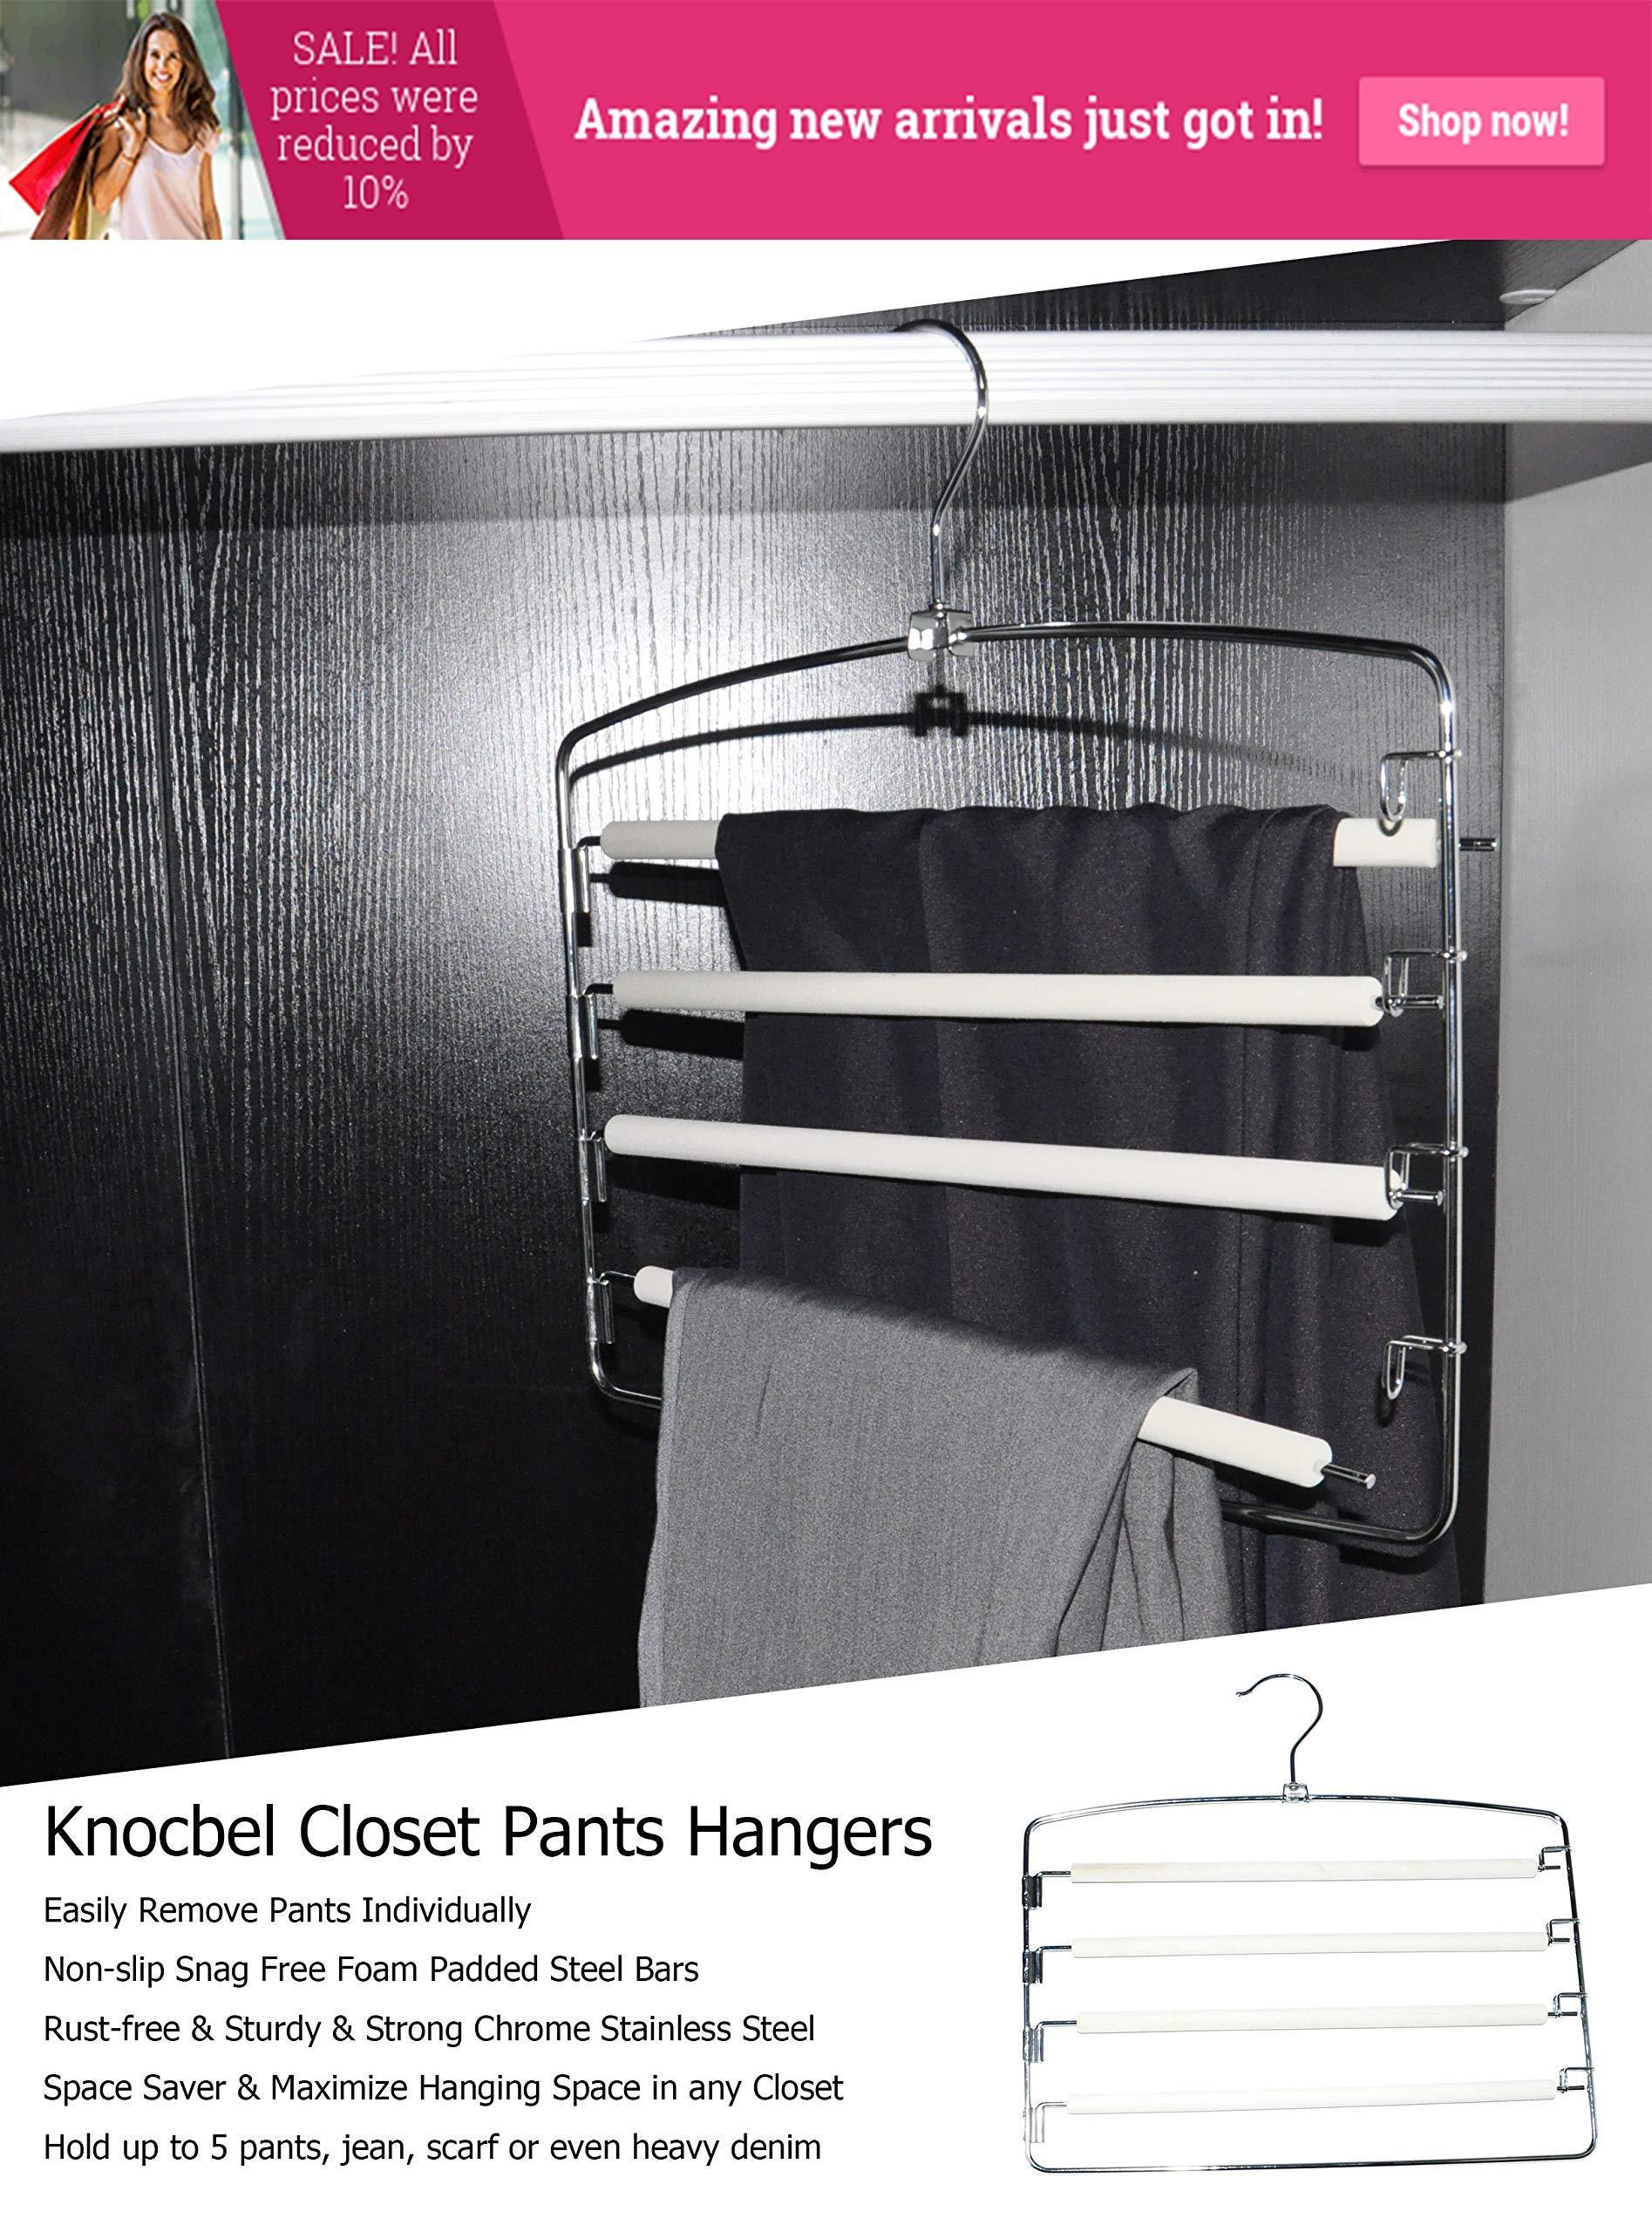 Knocbel Pants Clothes Hanger Closet Organizer 4 Layers Non Slip Swing Arm Hangers Hook Rack for Slacks Jeans Trousers Skirts Scarf 2-Pack (Beige)